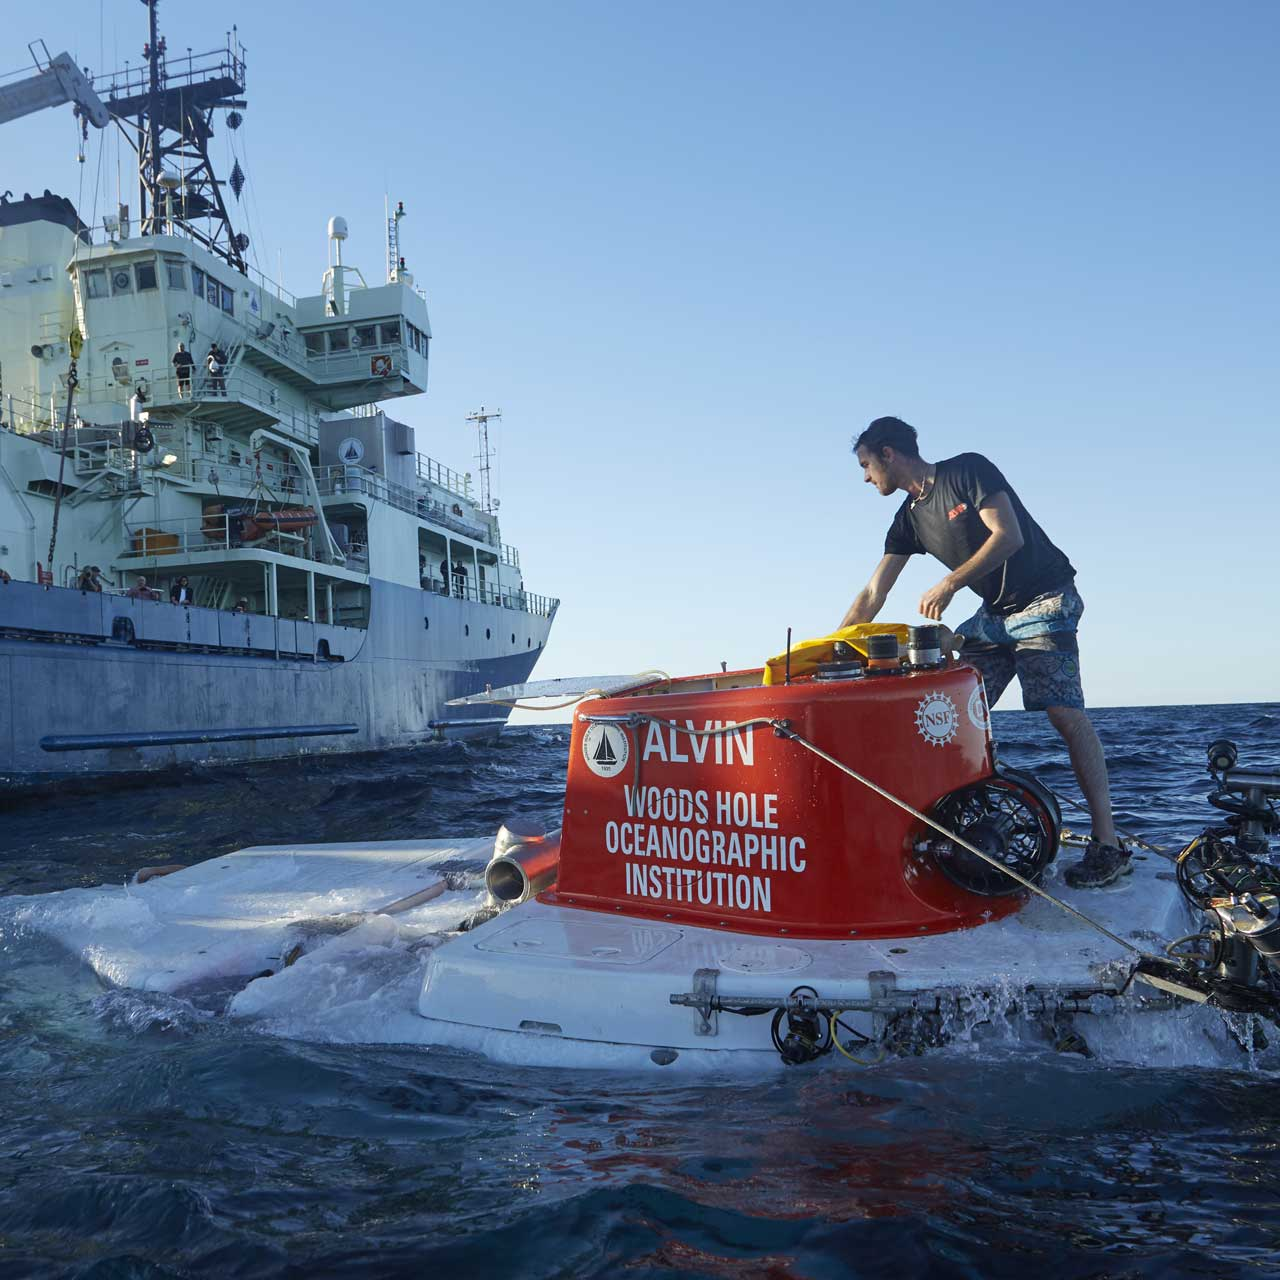 An Alvin team member prepares the sub for recovery after its 5000th dive in November 2018. (Photo by Drew Beweley, ©Woods Hole Oceanographic Institution)